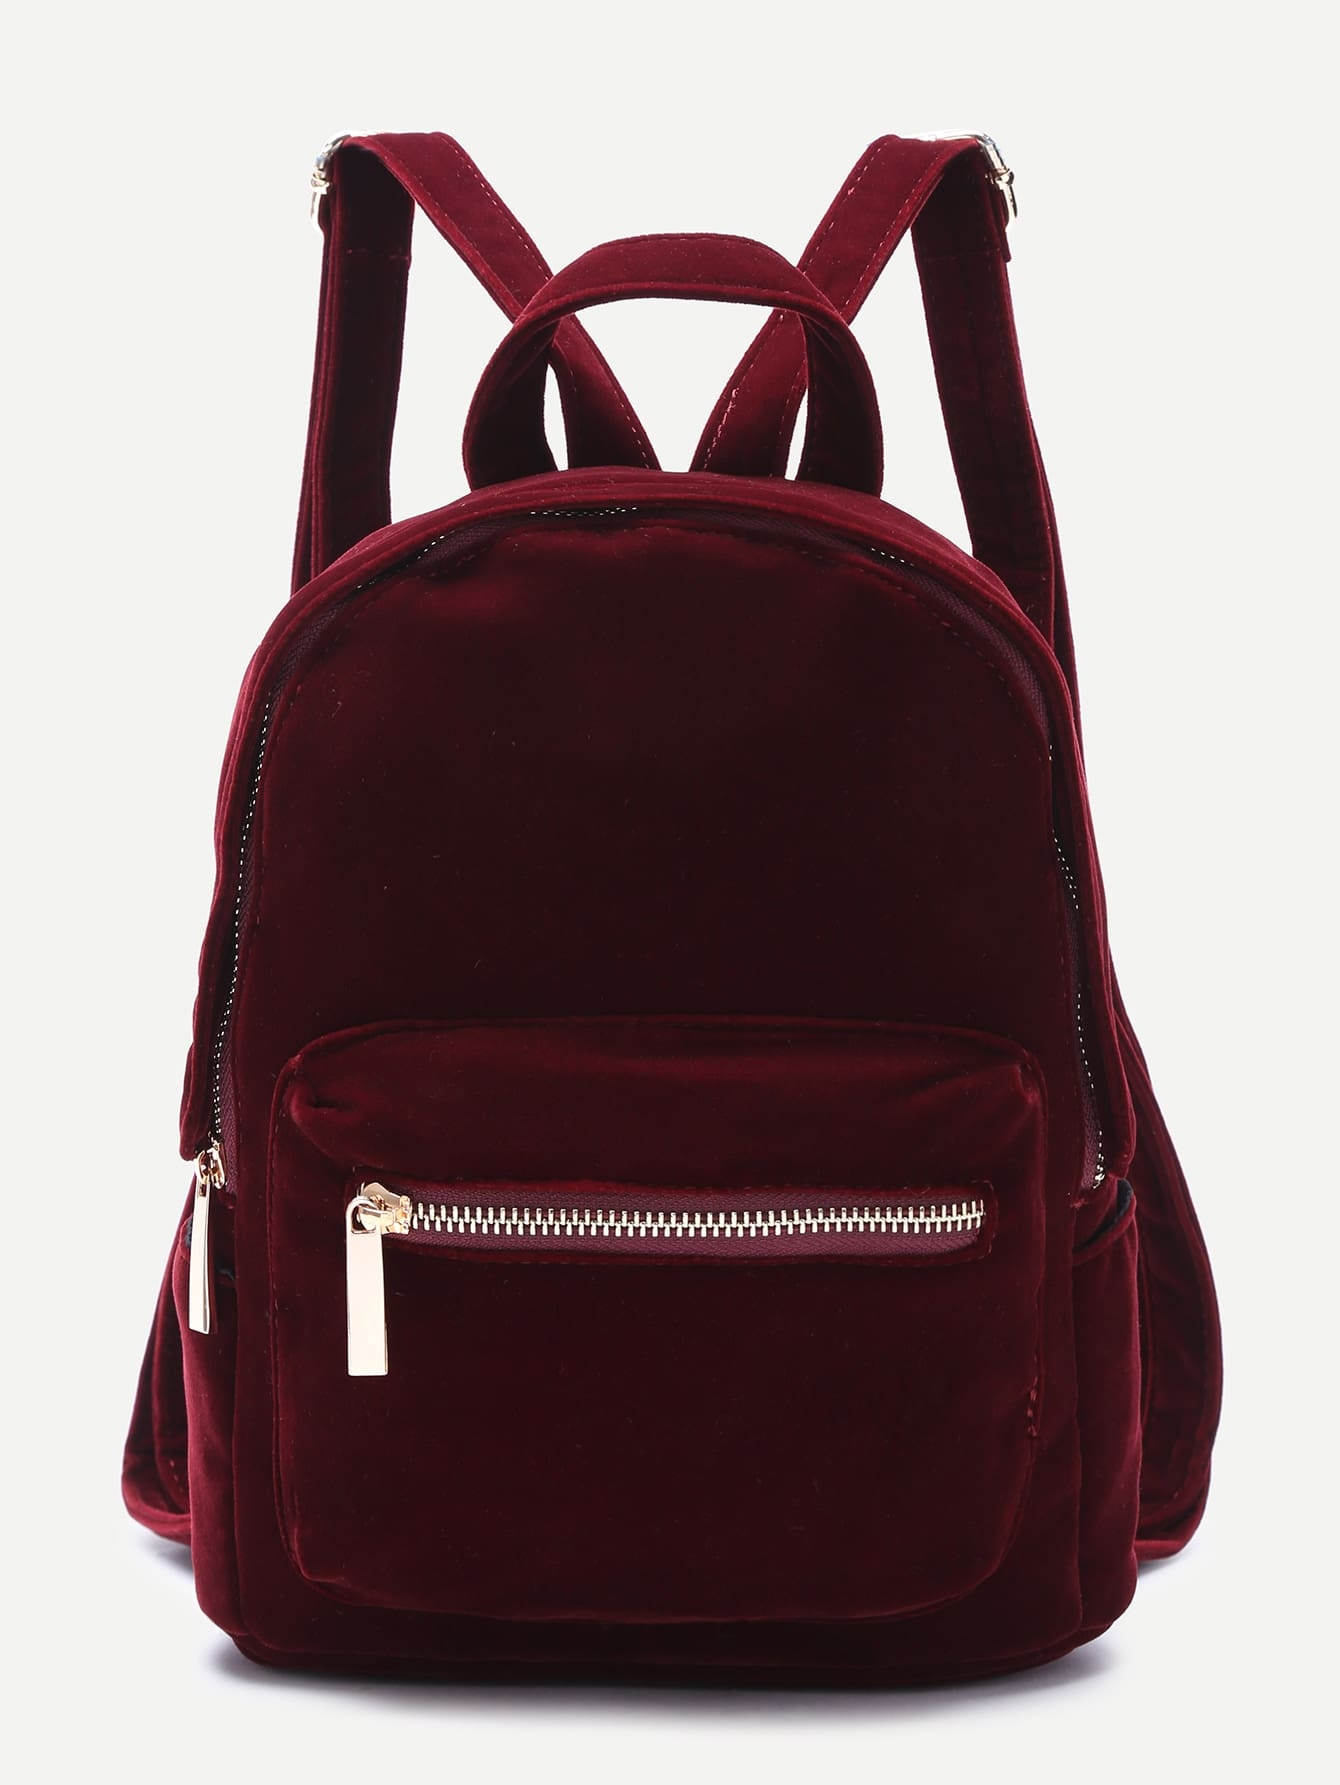 burgundy pocket front double handle velvet backpack shein sheinside. Black Bedroom Furniture Sets. Home Design Ideas